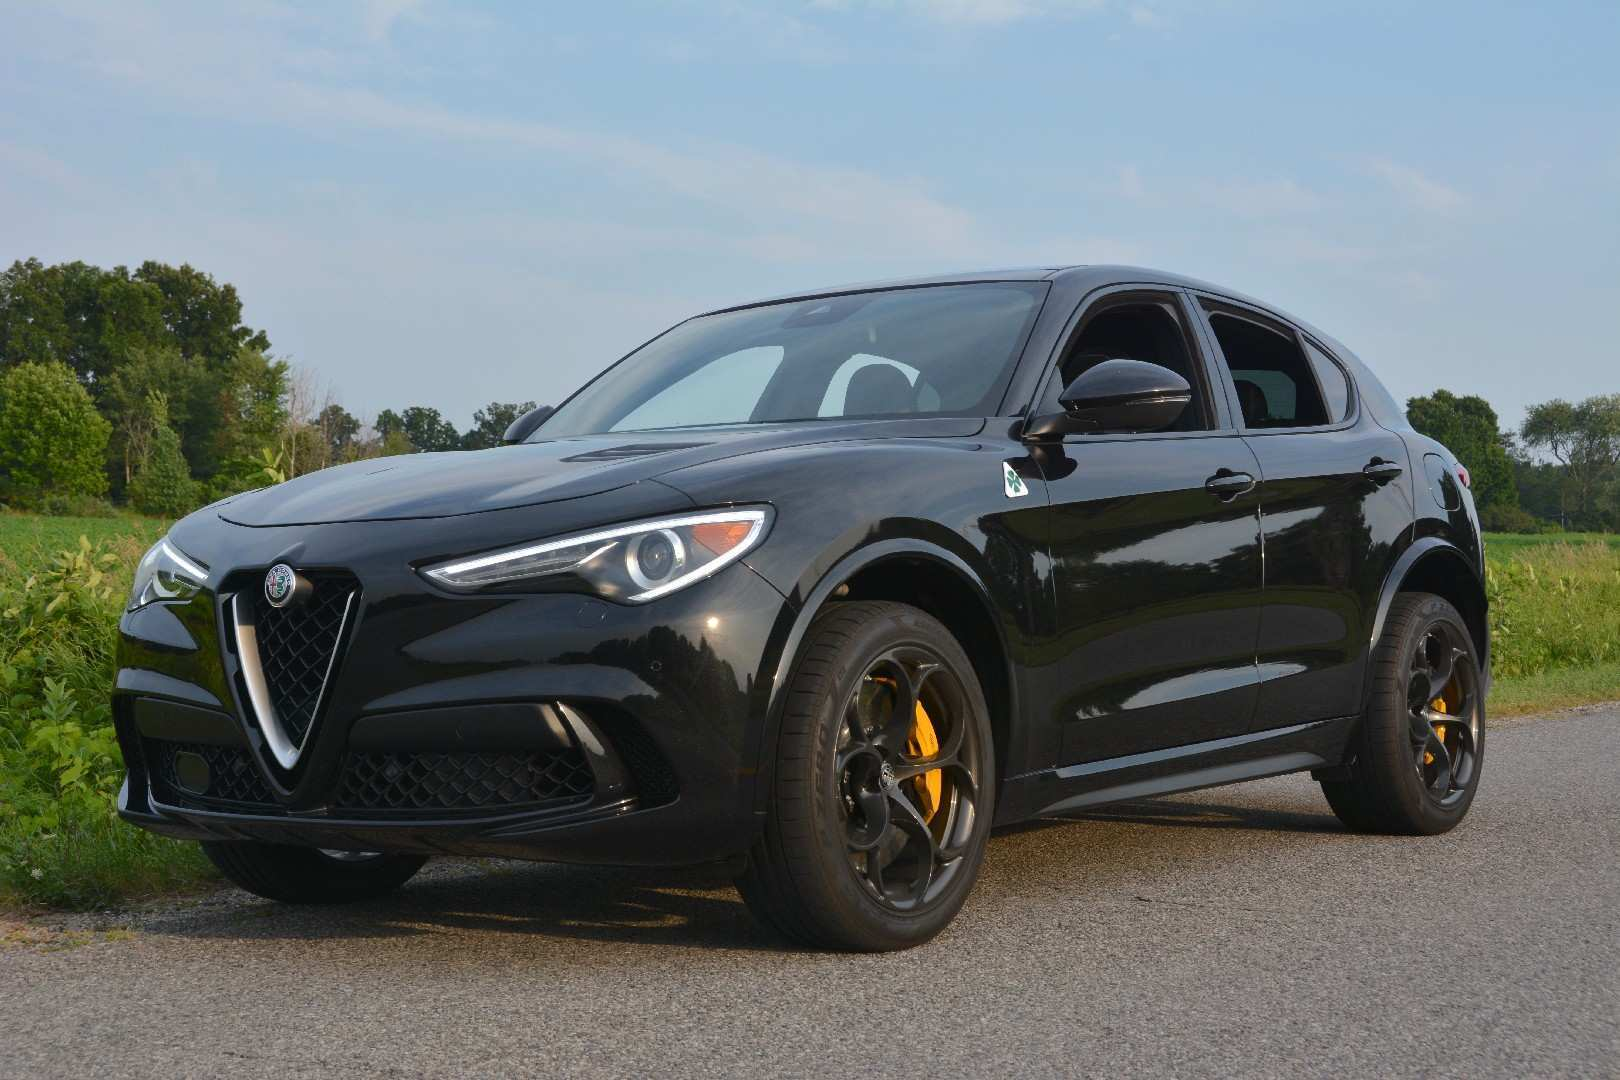 98 Best Review Alfa Gt 2019 Overview with Alfa Gt 2019